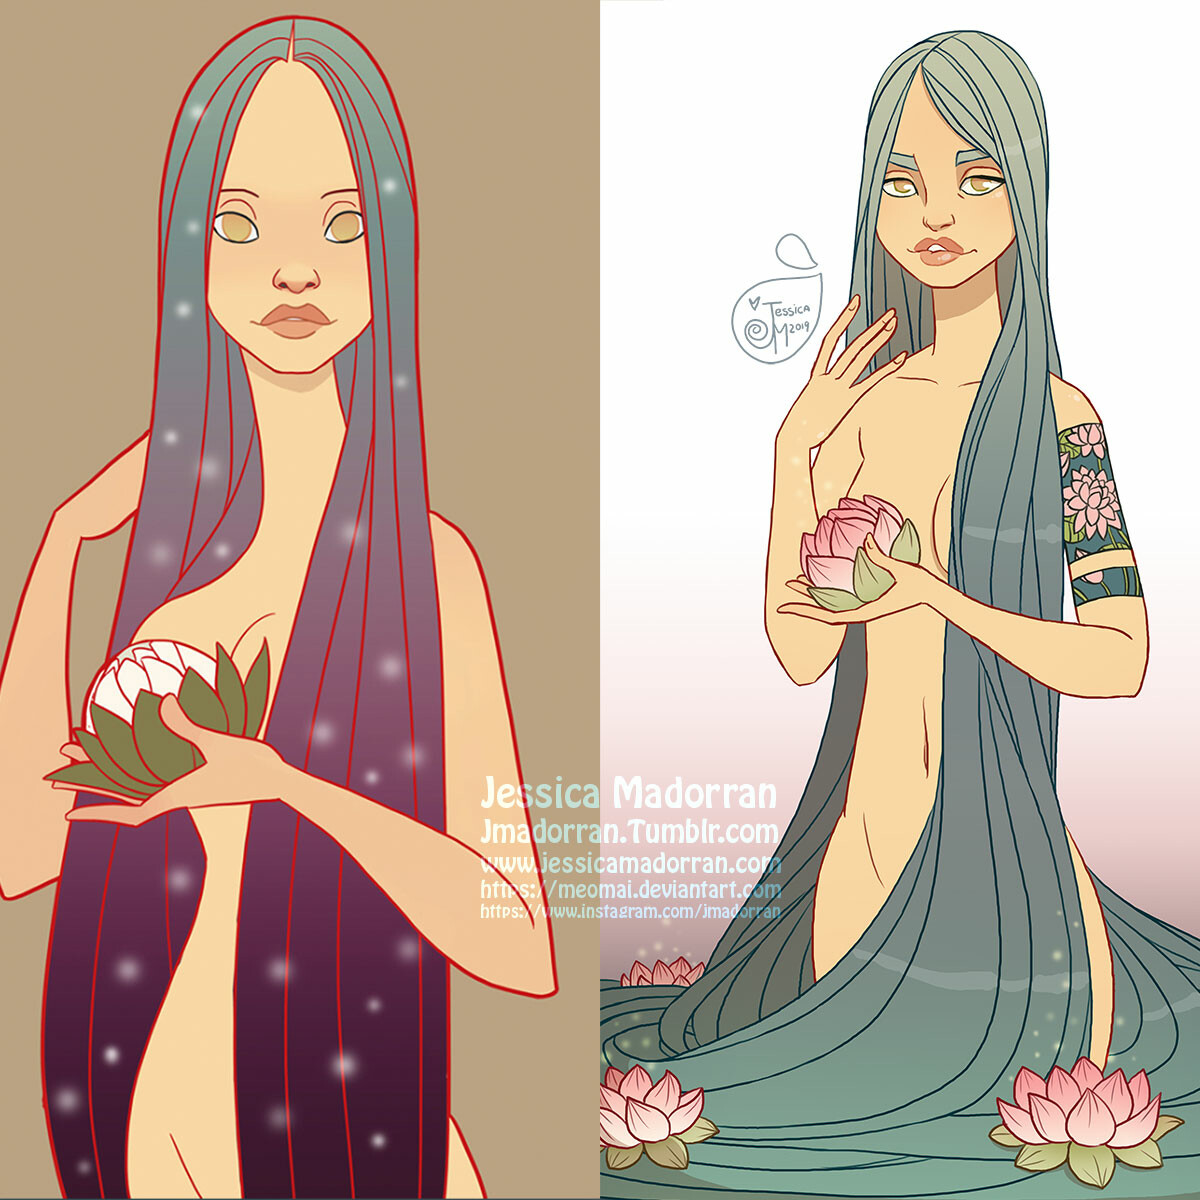 Jessica madorran character design redesign lotus pond 2019 square comparison version artstation